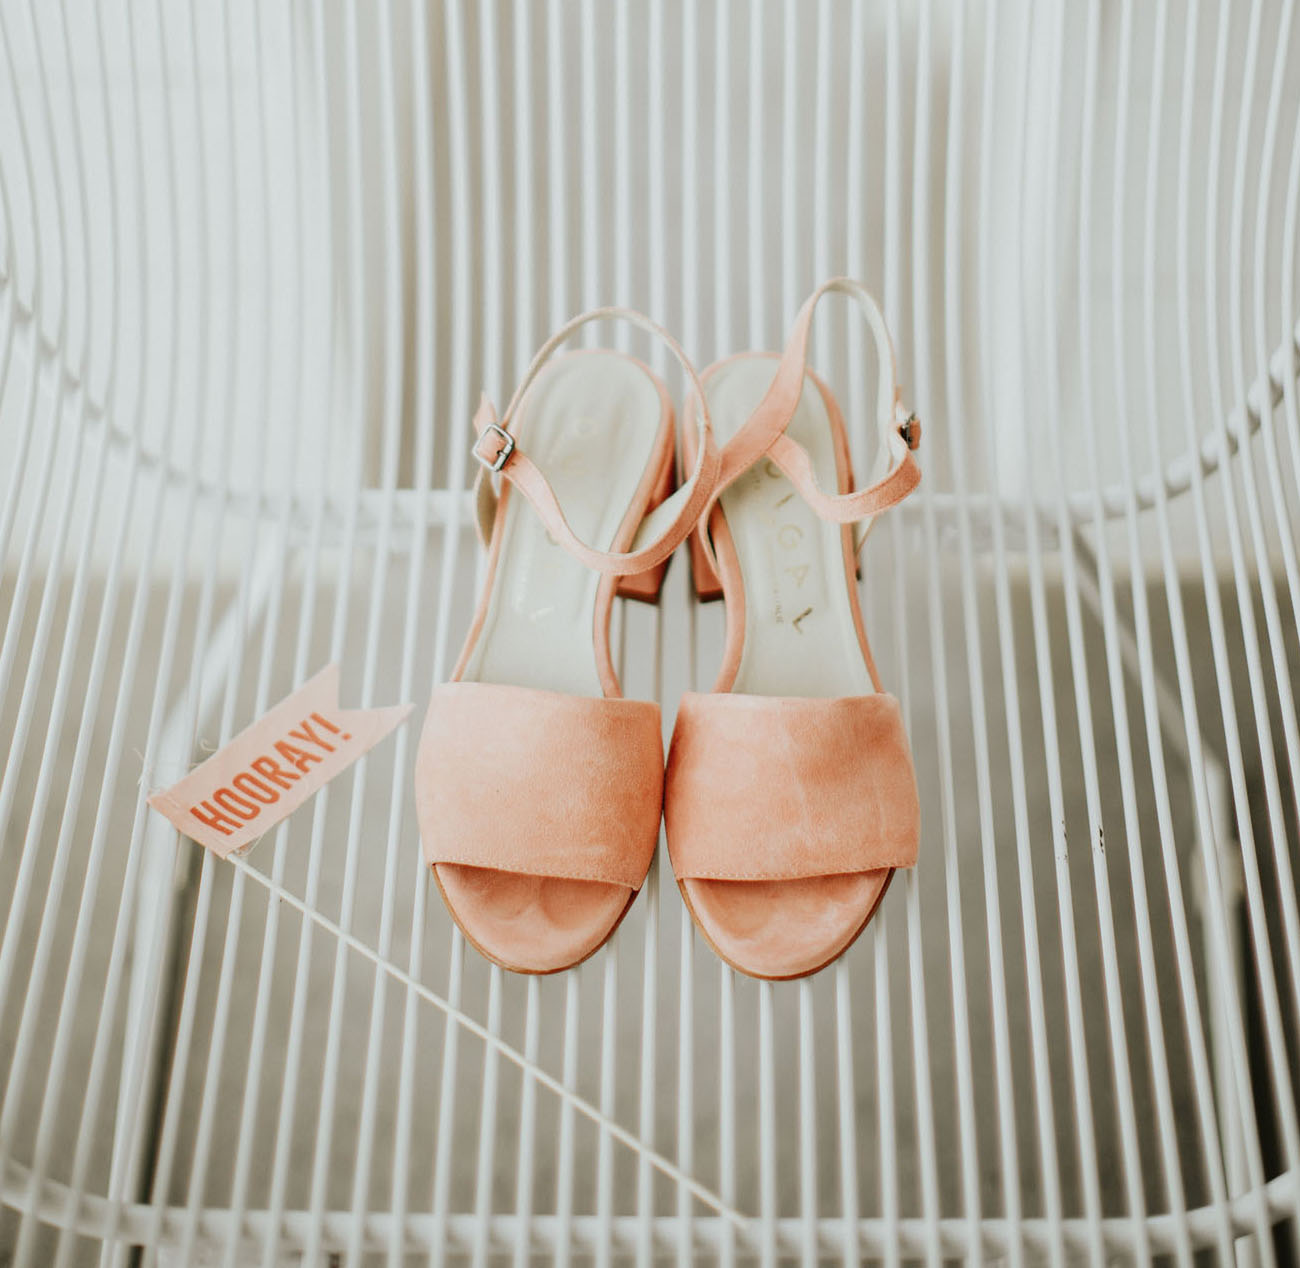 The wedding shoes were cute and comfy peachy pink ones